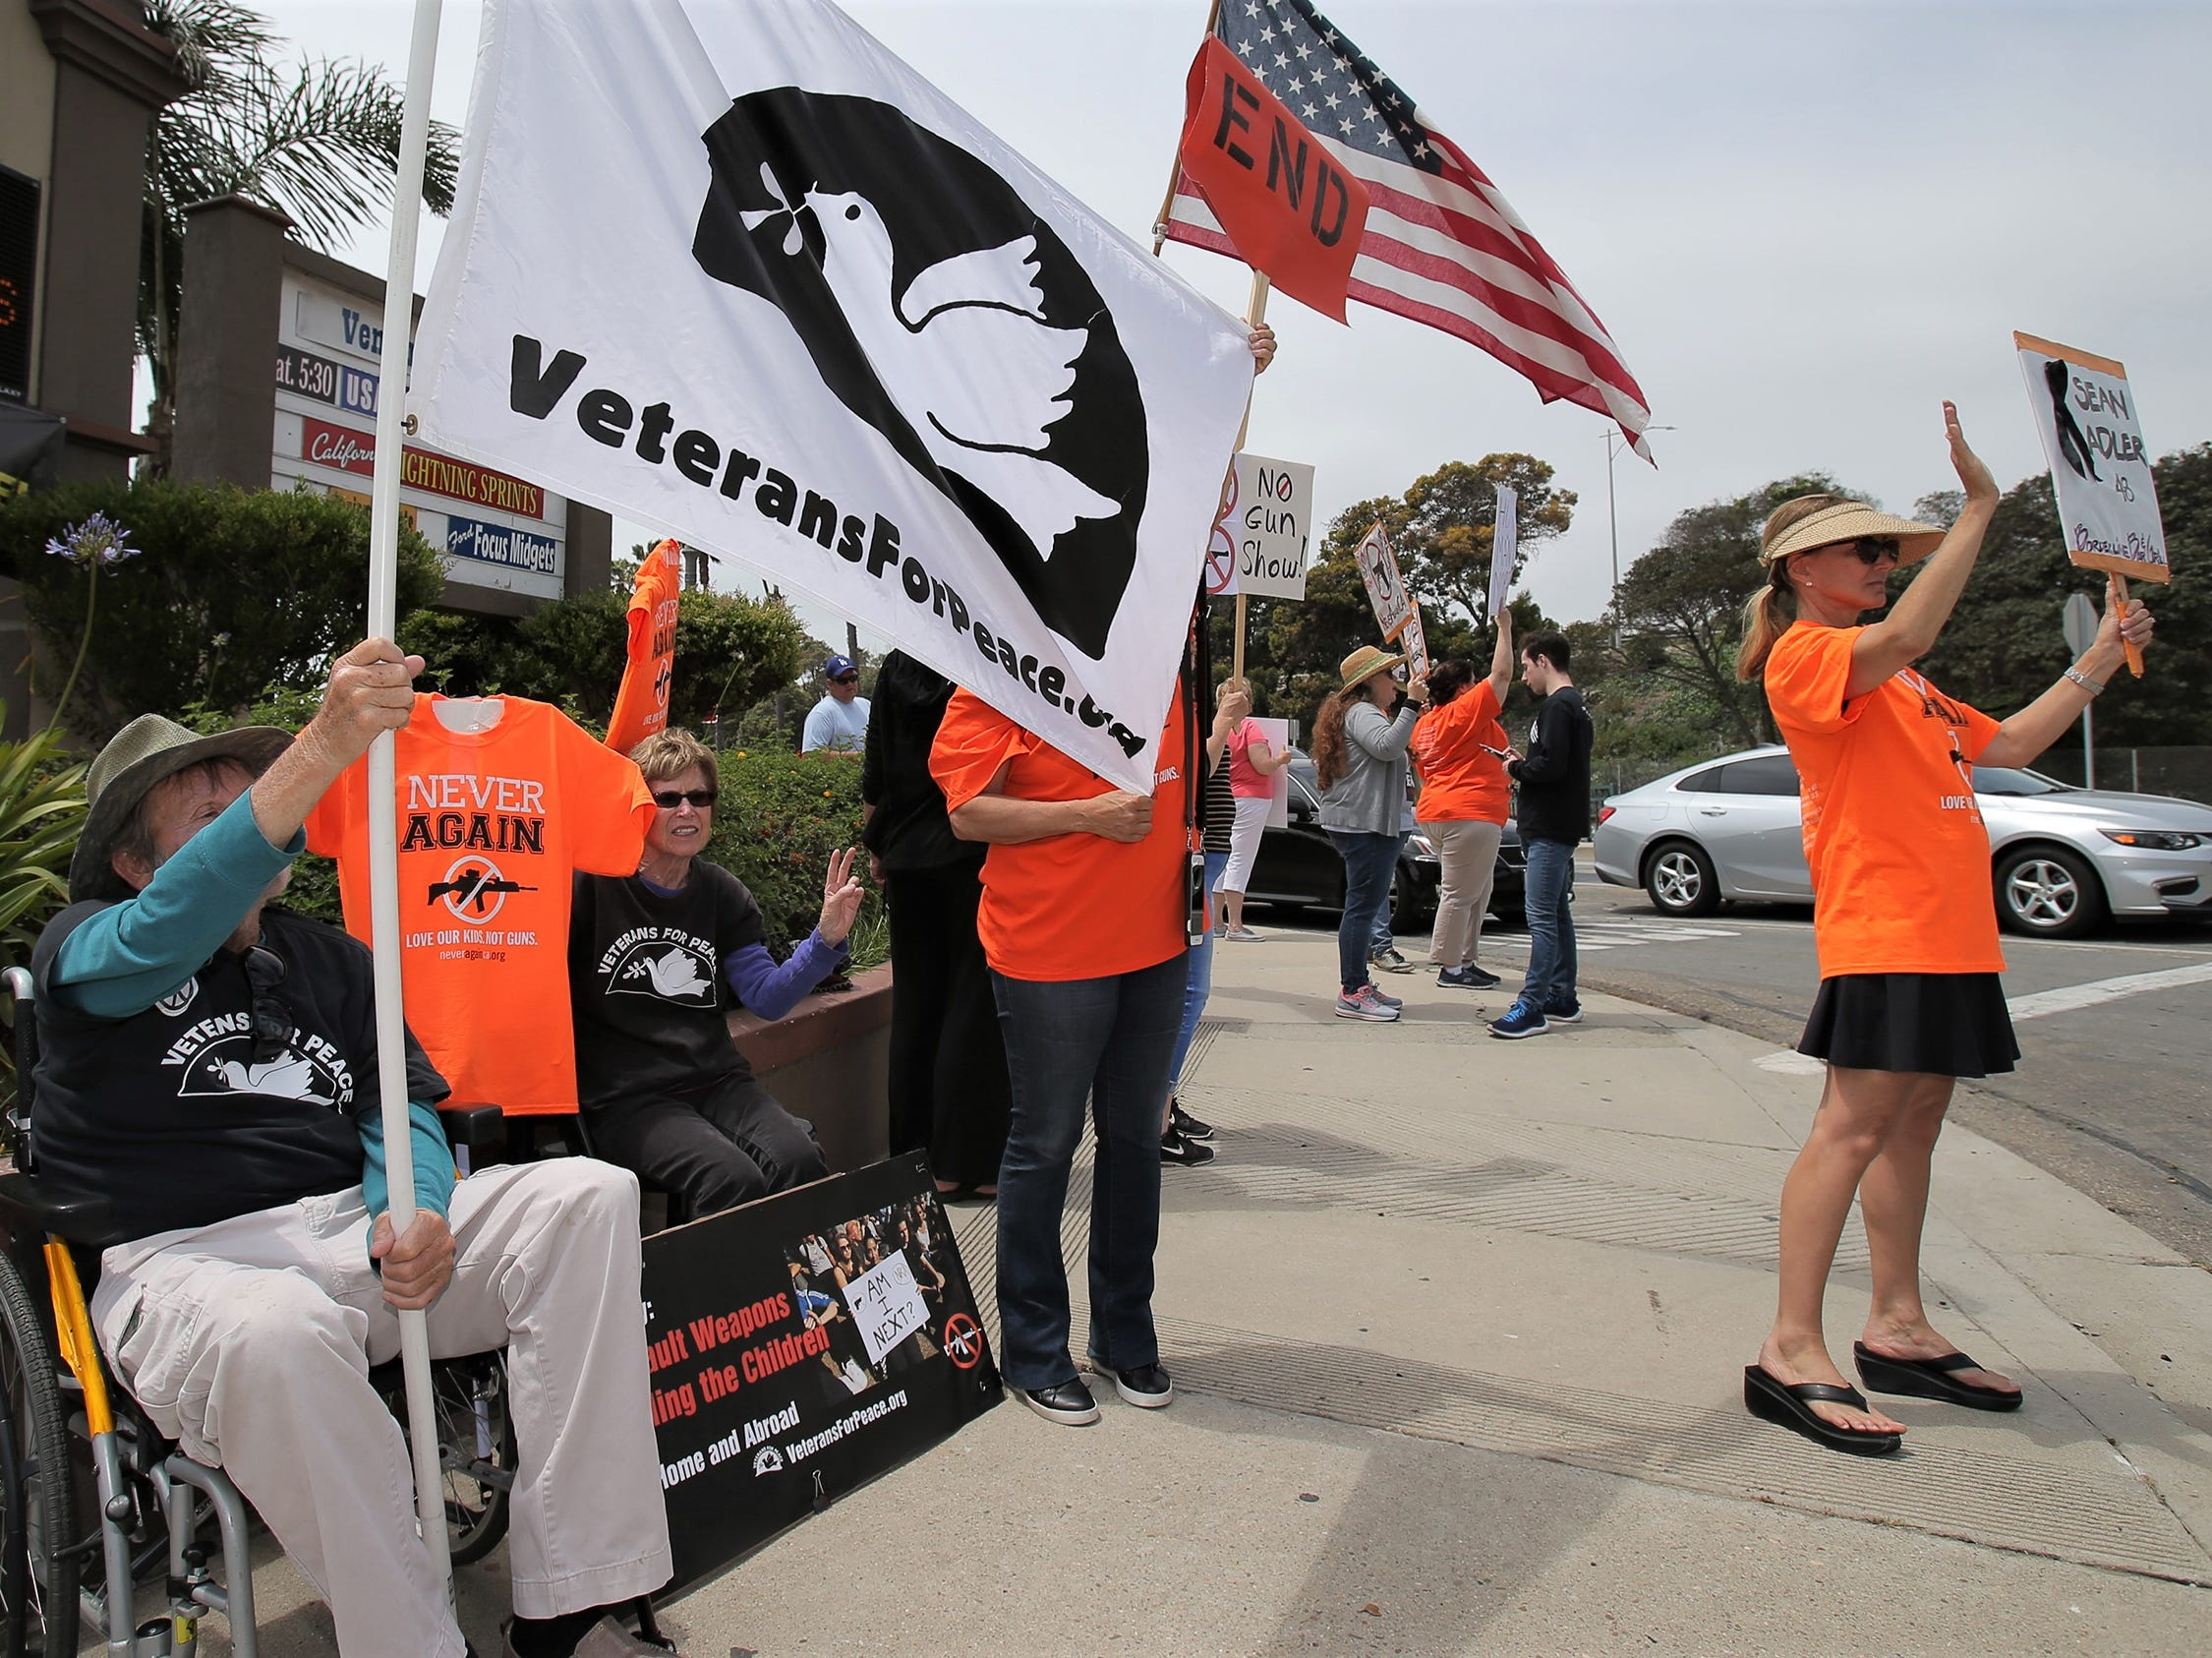 From left are gun-control supporters Carl Smith; his wife, Sheila; Julie Diaz, behind flag; and Anitra Evans. They were demonstrating Saturday during the Crossroads of the West Gun Show at the Ventura County Fairgrounds. About 40 people showed up for the protest. Diaz and Evans said they knew people who were killed in the Borderline shooting.